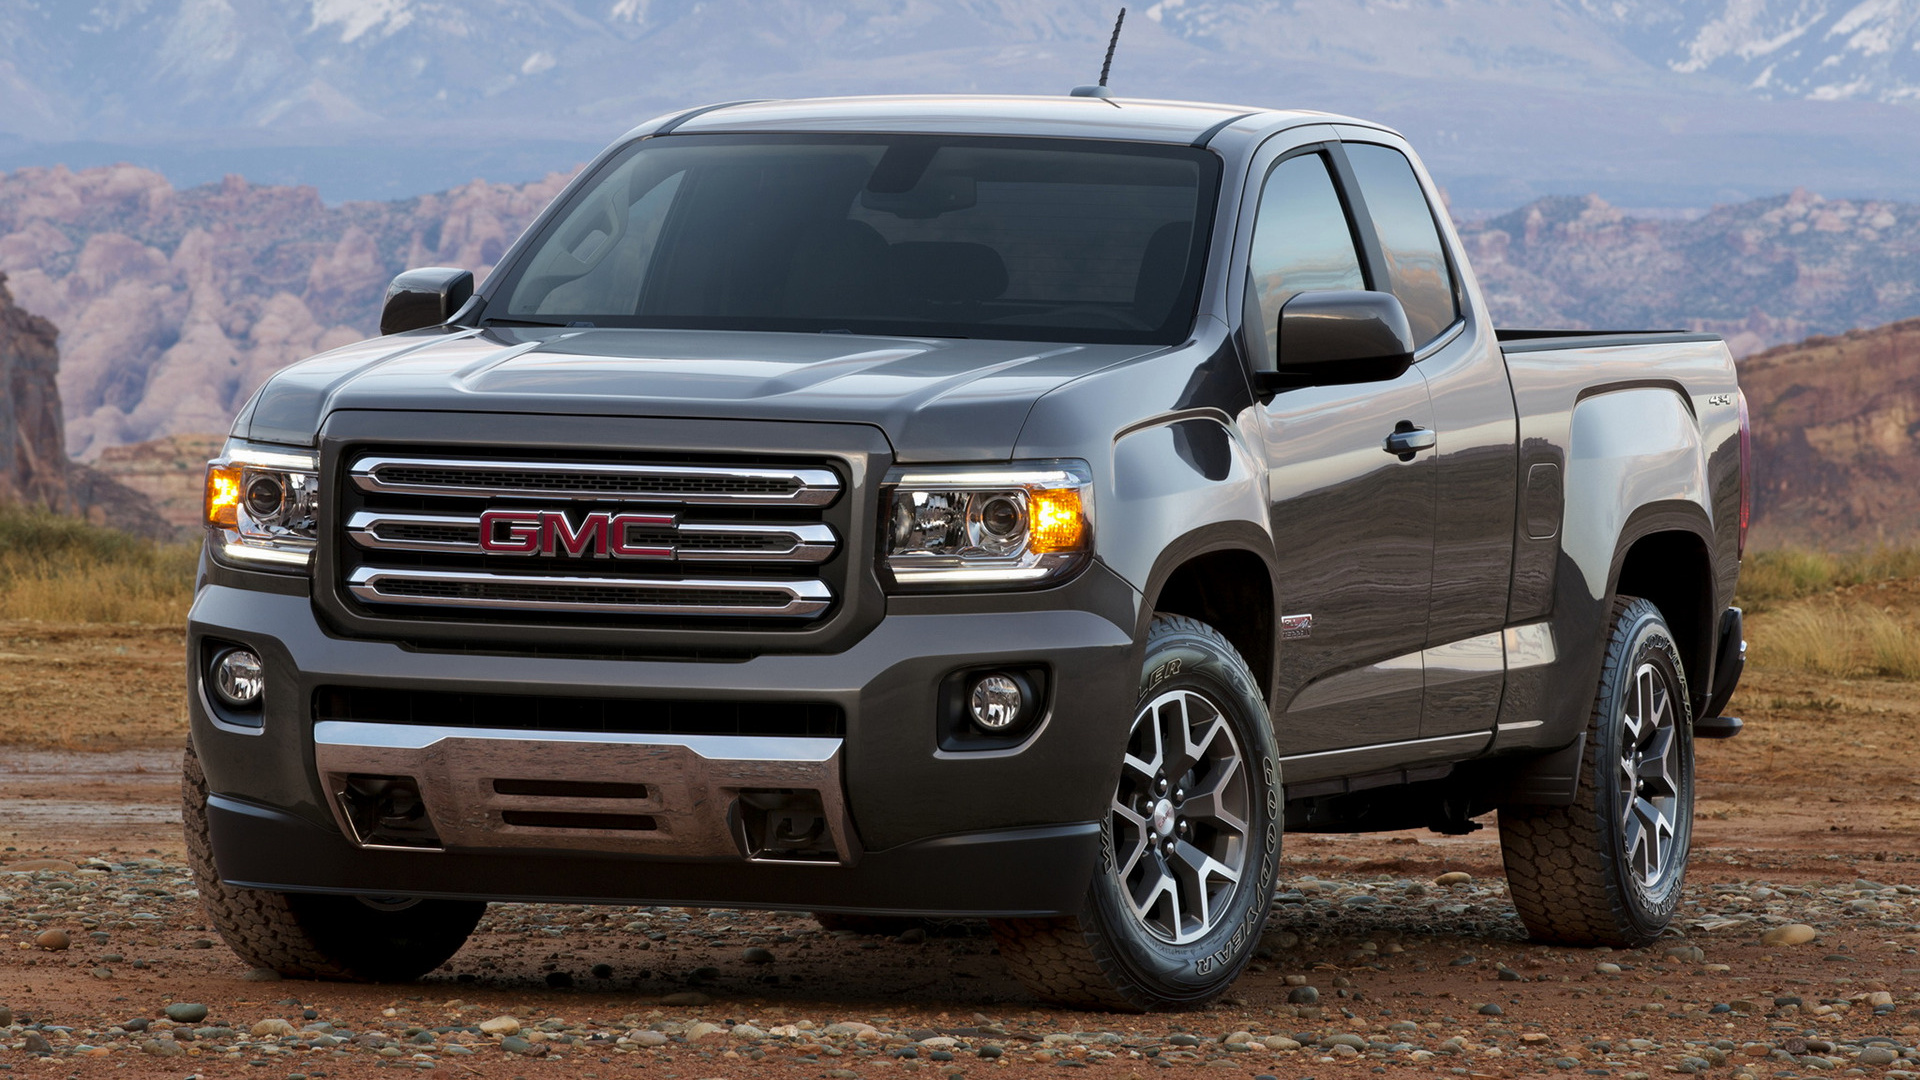 gmc canyon all terrain extended cab 2015 wallpapers and hd images car pixel. Black Bedroom Furniture Sets. Home Design Ideas